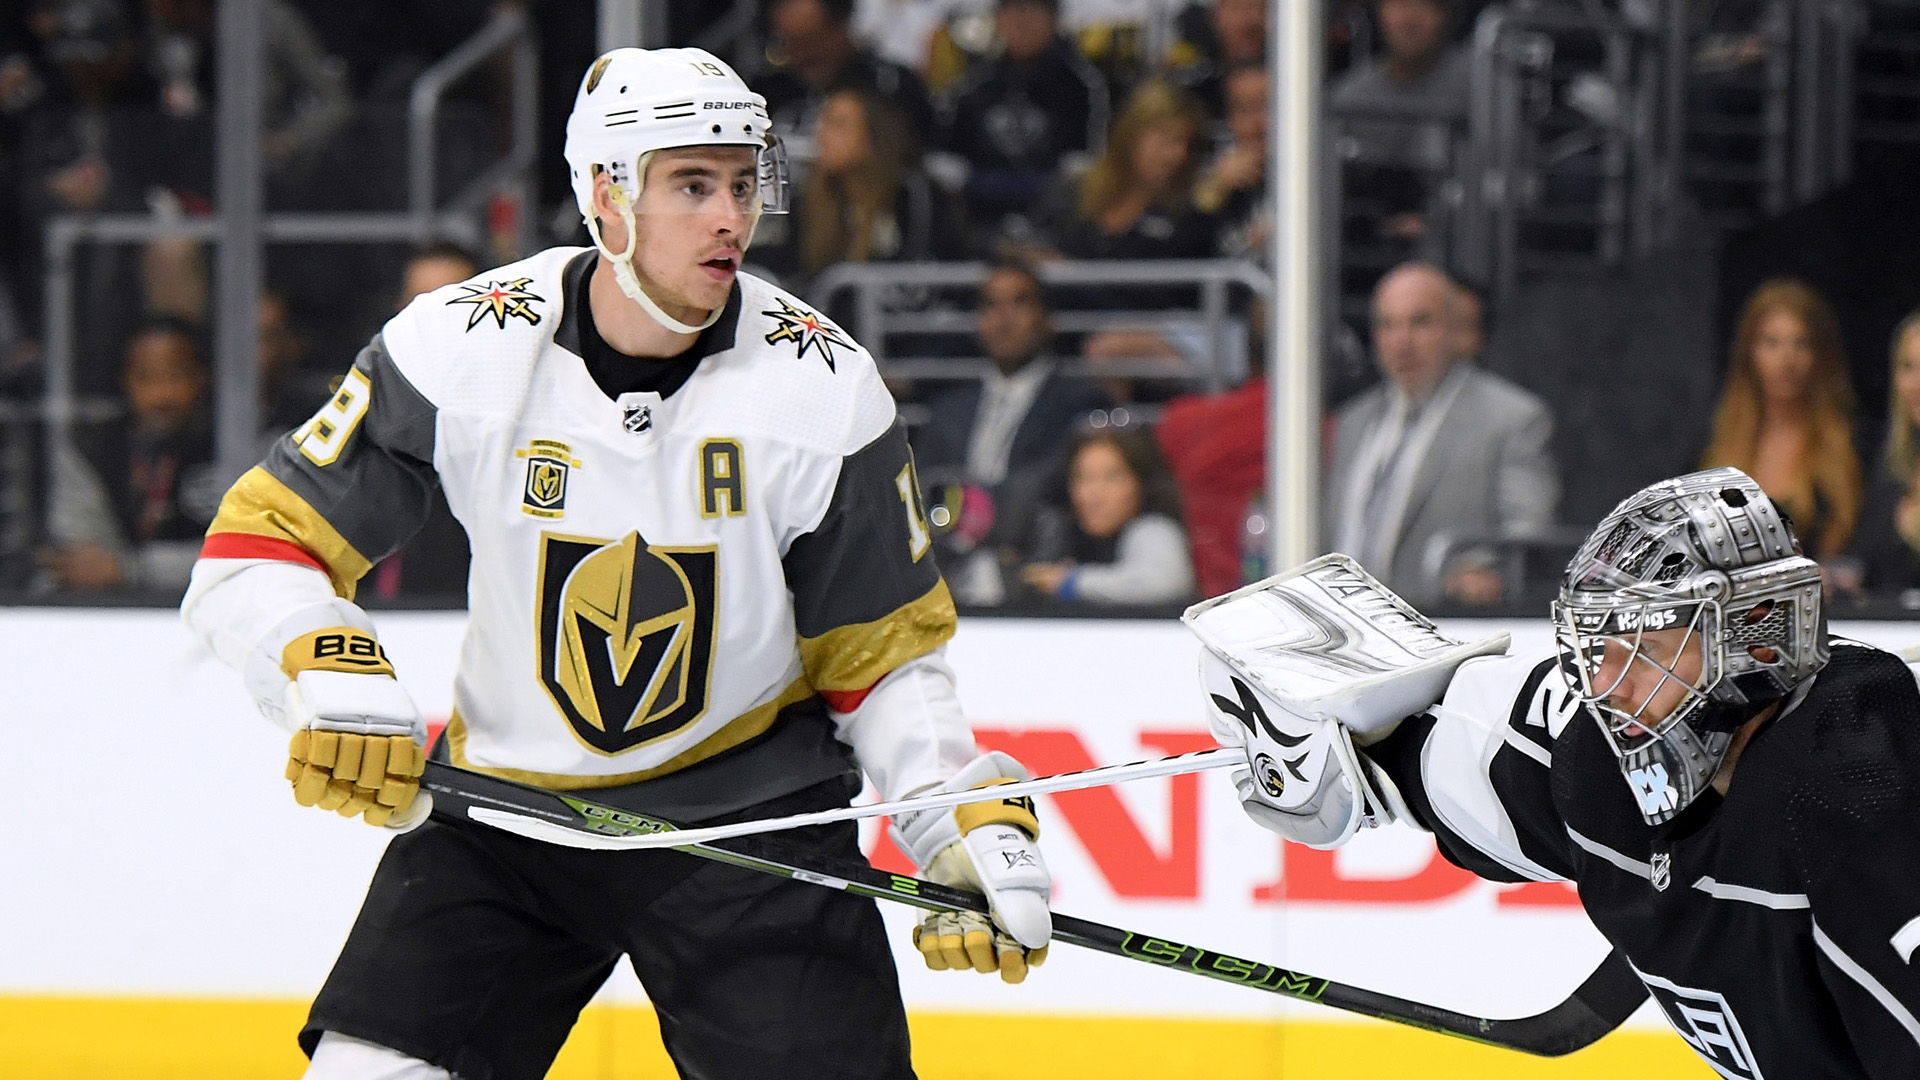 Las Vegas shooting survivors name baby after Golden Knights' Reilly Smith